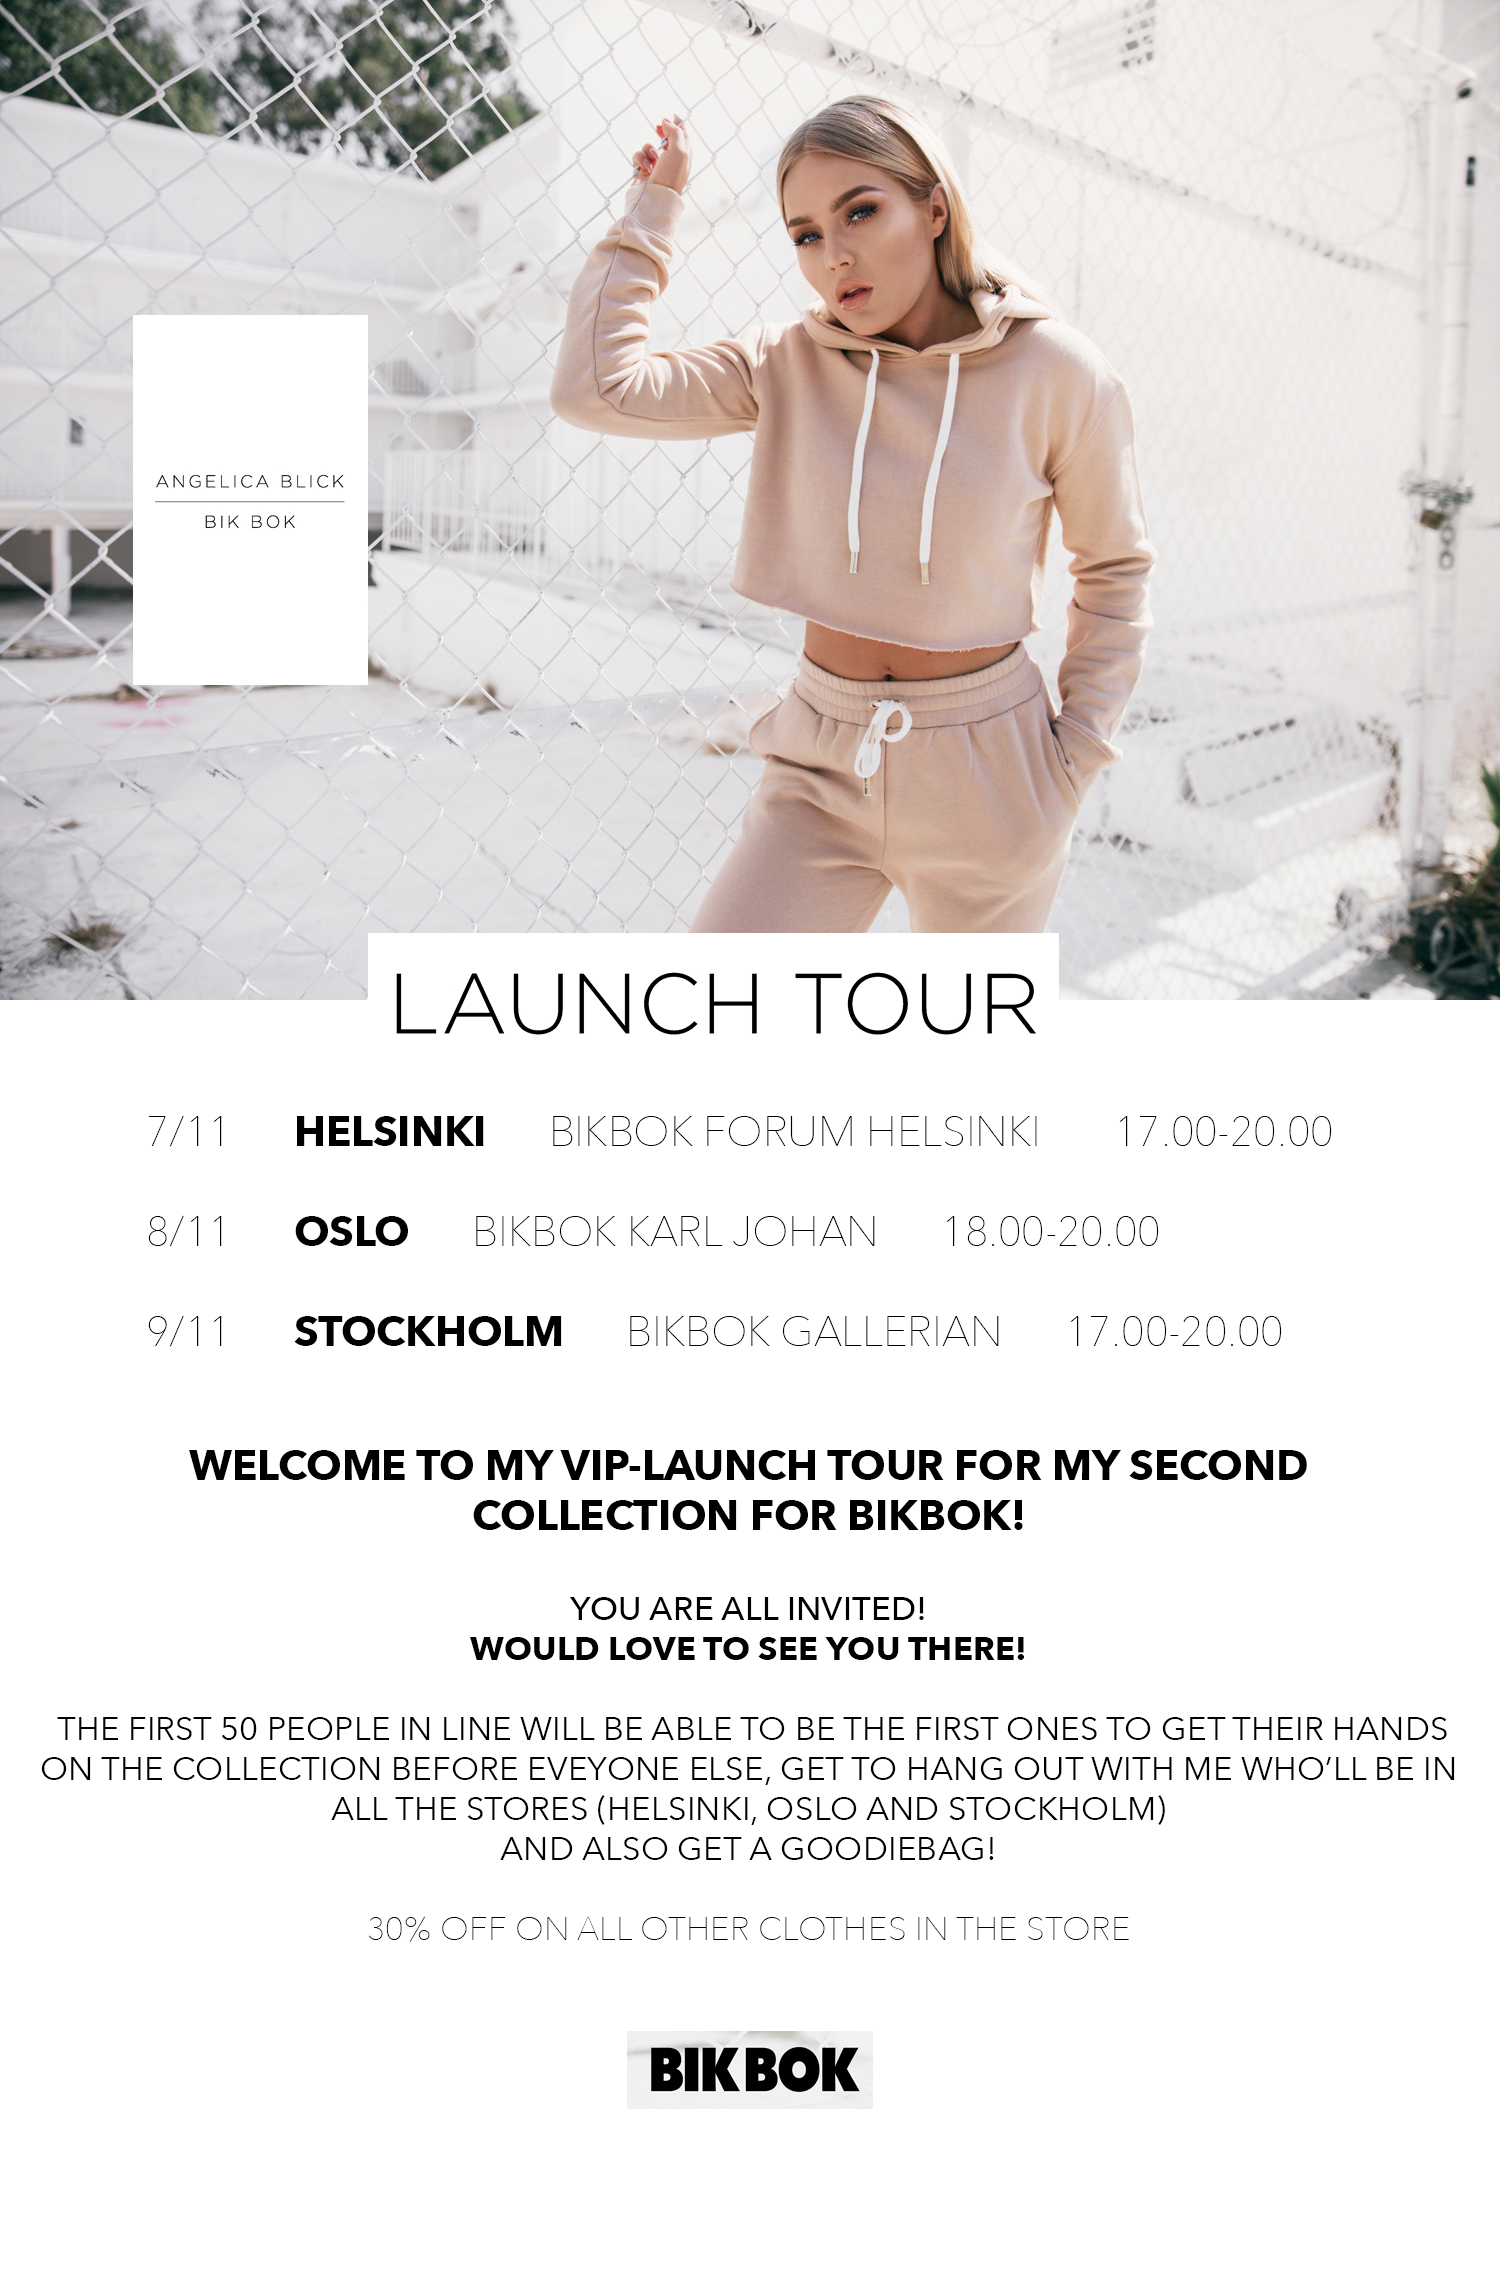 MY BIKBOK LAUNCH TOUR! COME AND HANG OUT WITH ME!